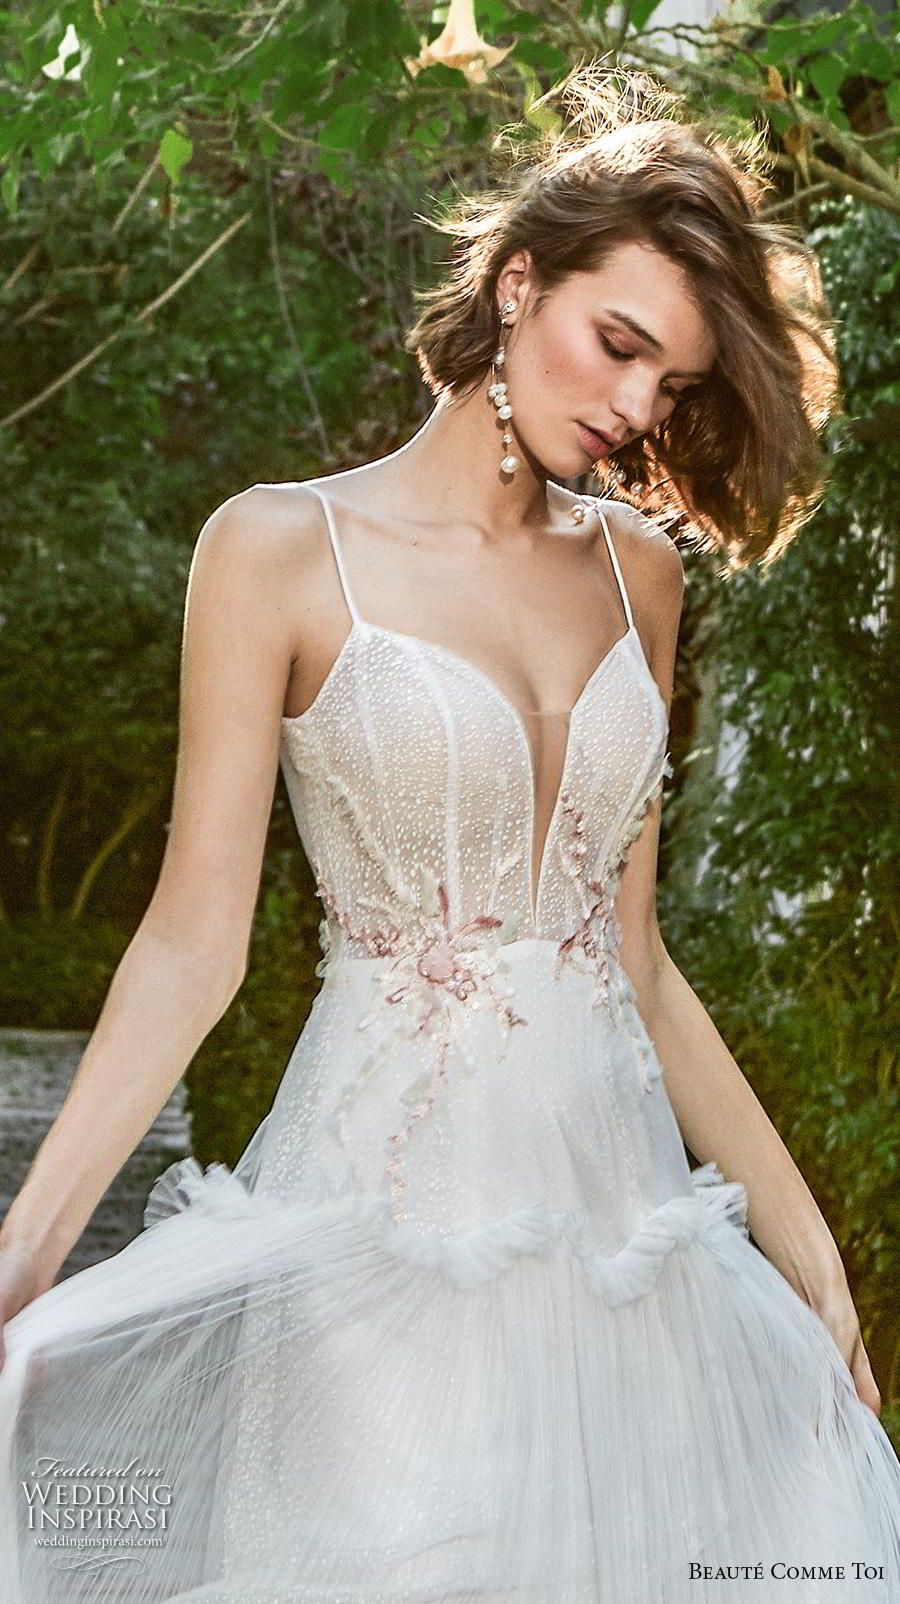 beaute comme toi f2020 bridal sleeveless spaghetti strap deep sweetheart neckline heavily embellished bodice simple romantic sexy soft a  line wedding dress mid back sweep train (ellie) zv